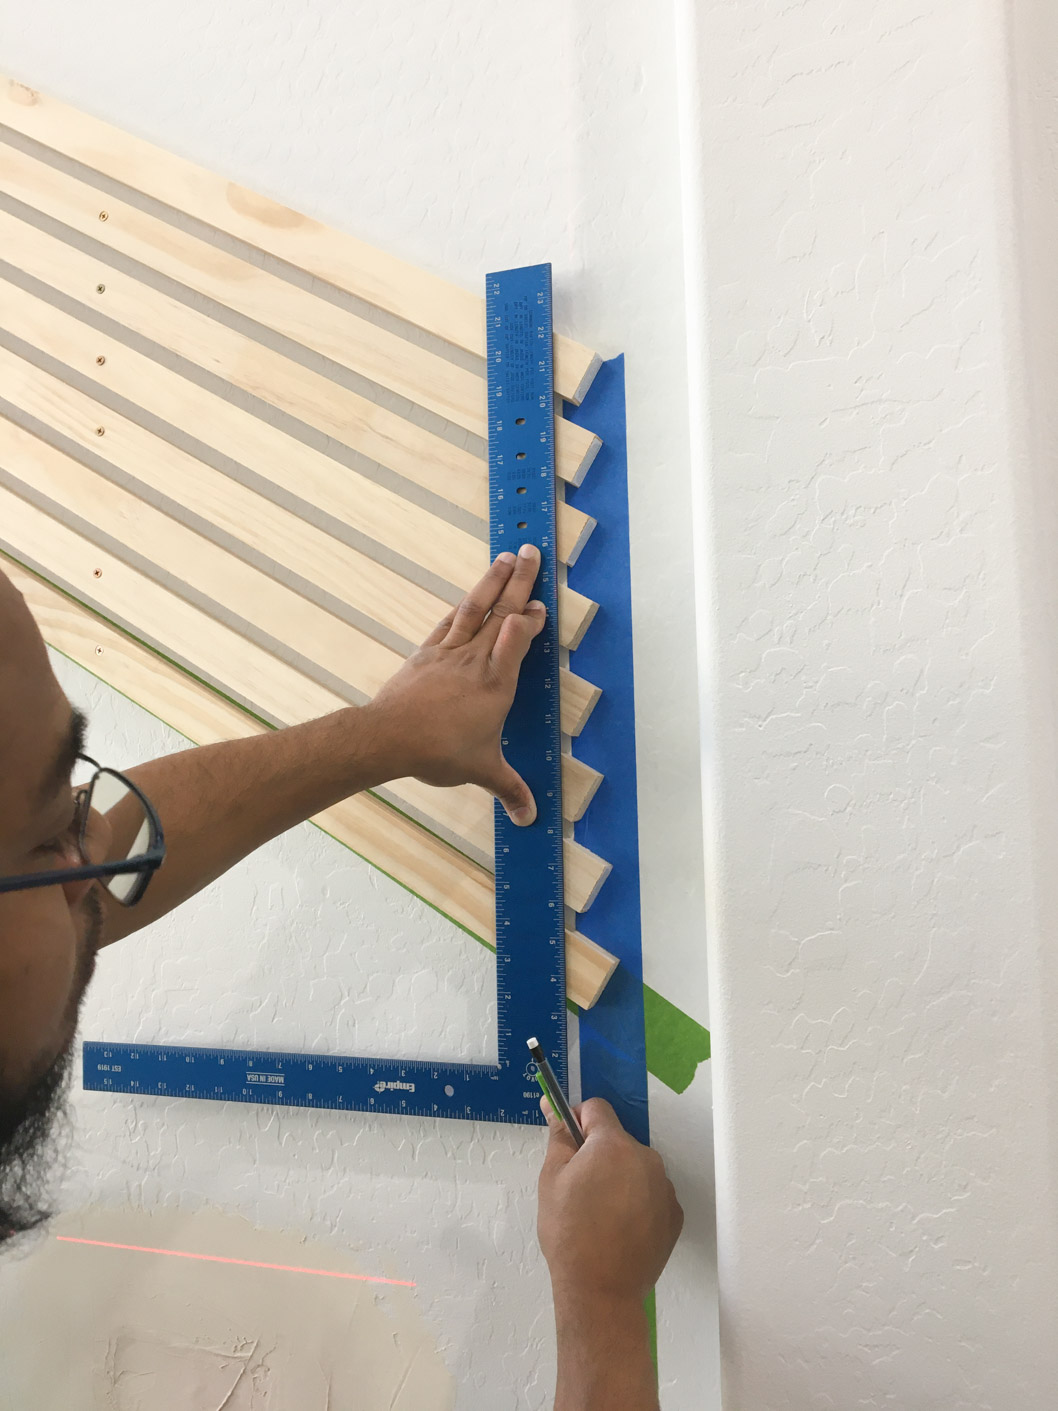 Using a ruler to draw a vertical line down the diagonal wood slat pieces.